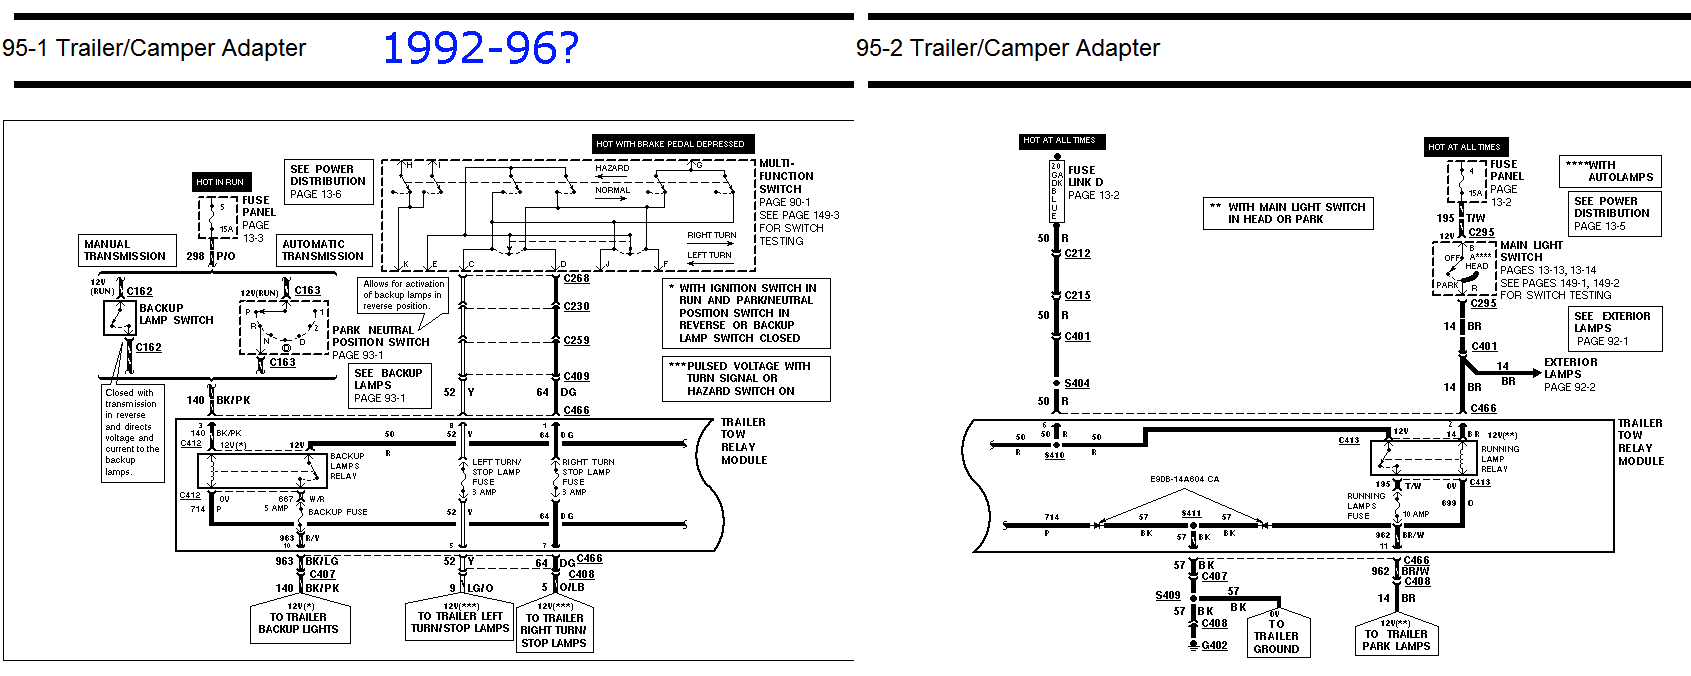 4 Way Trailer Wiring Diagram Ford Ranger Start Building A Flat For 2000 Images Gallery